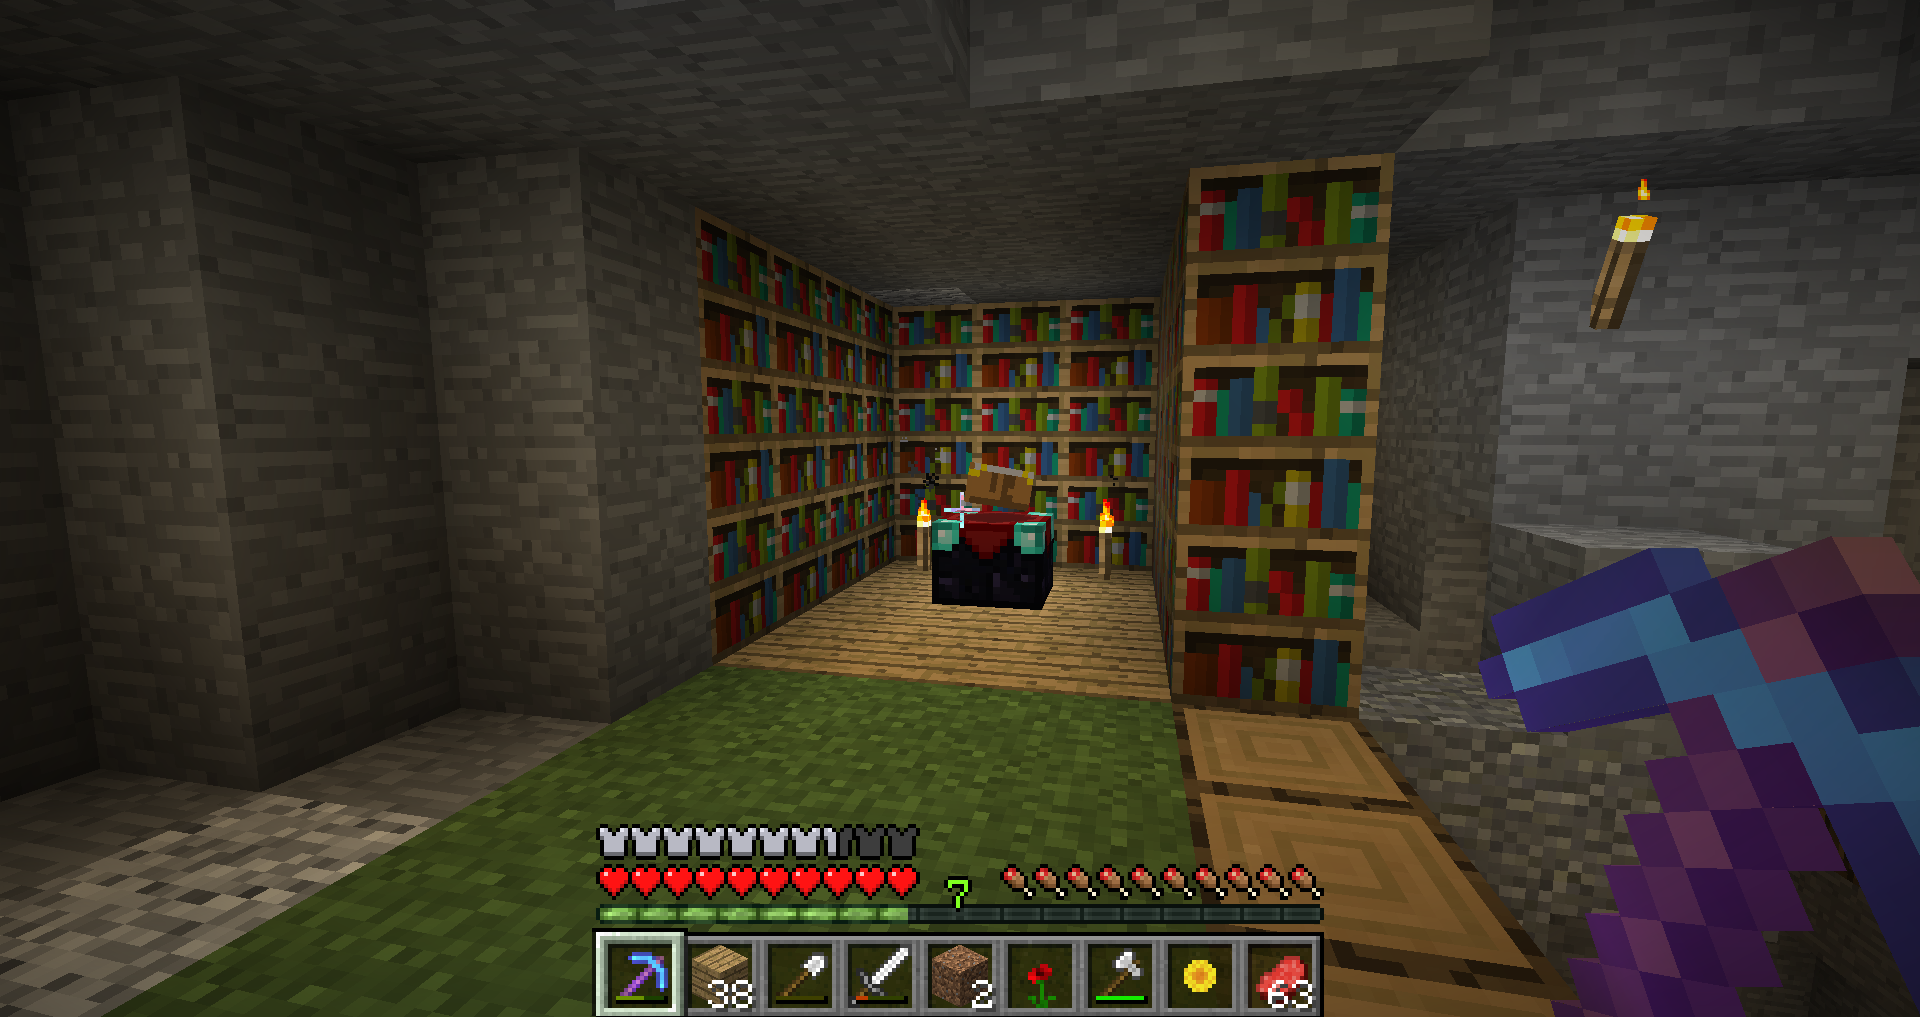 Minecraft Enchantment Room Designs